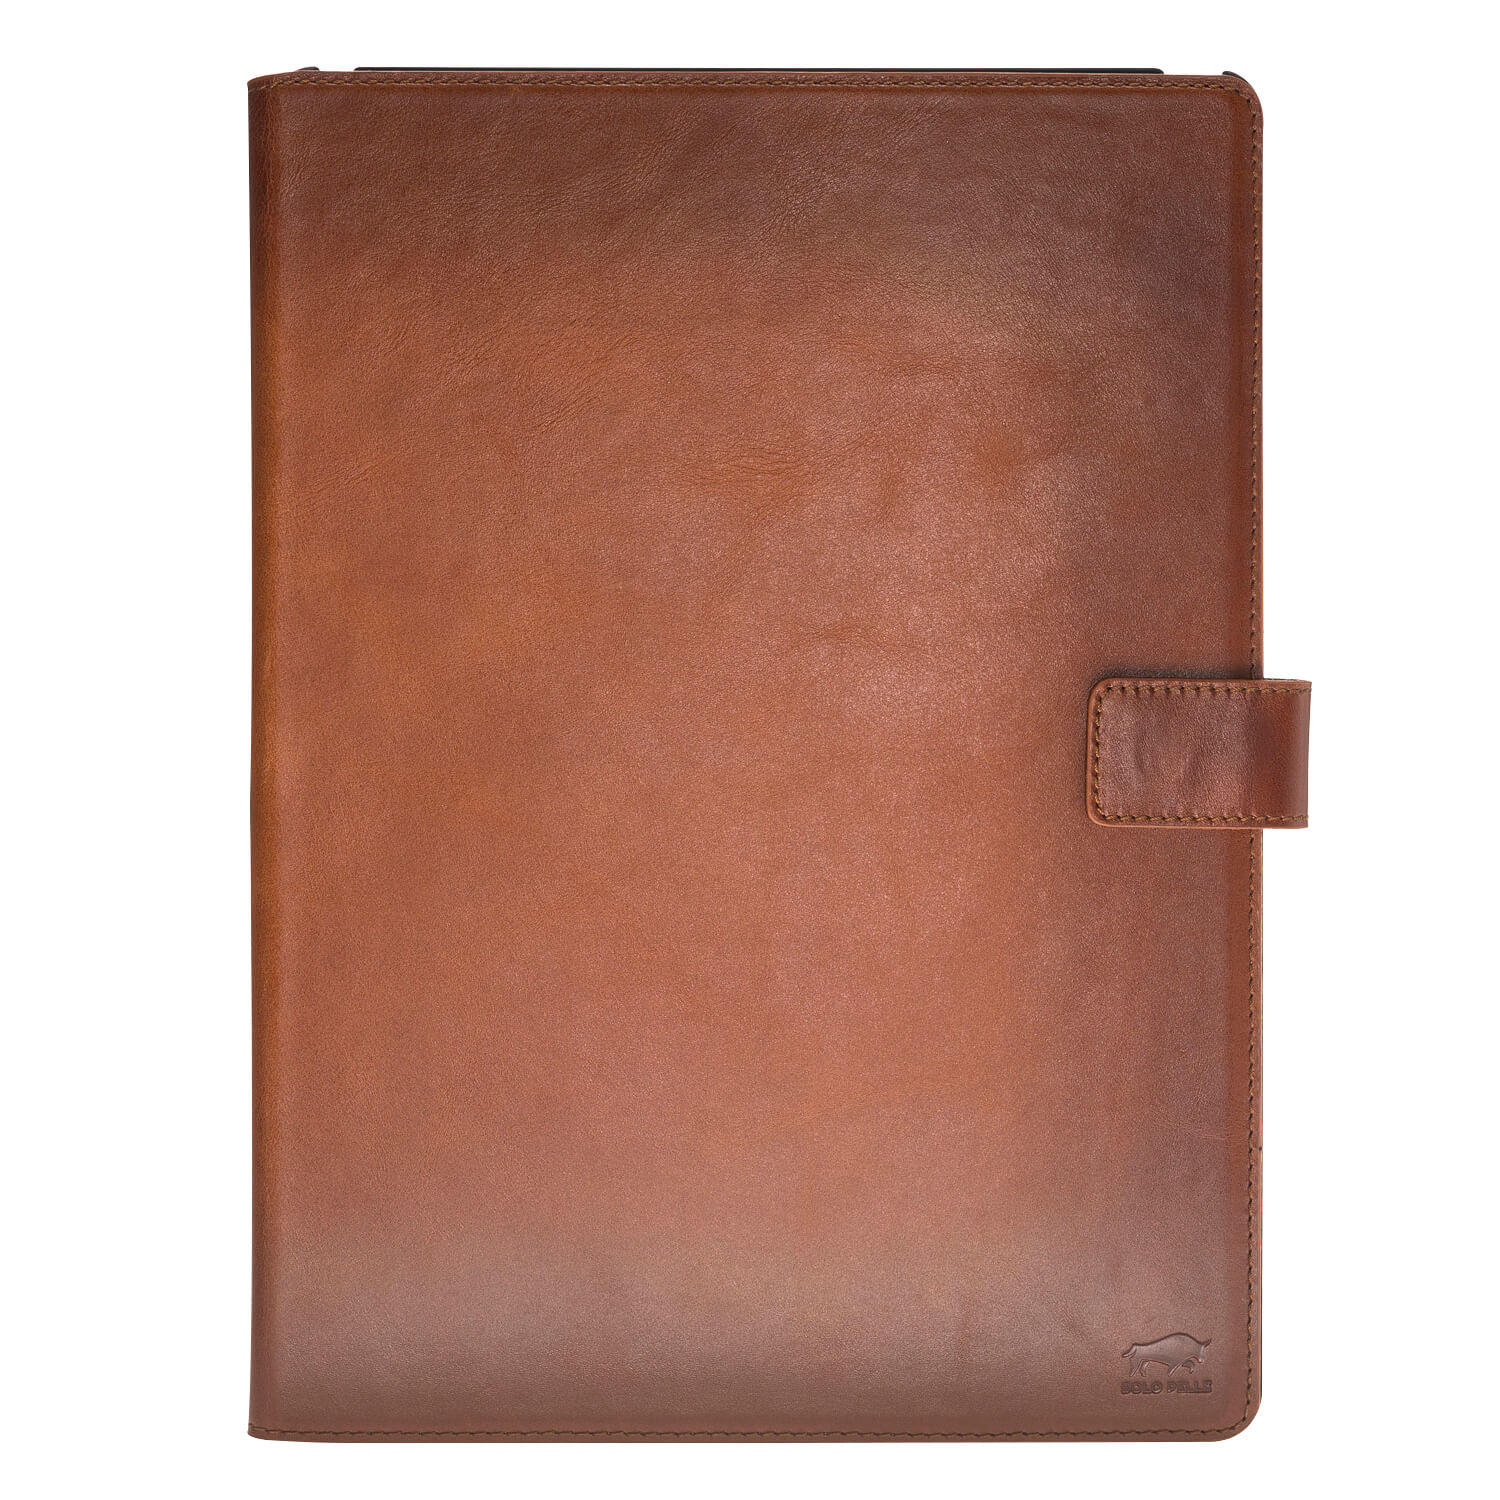 "IPad Pro 12,9 Zoll ""Miami"" Ledertasche in Cognac Braun Burned"